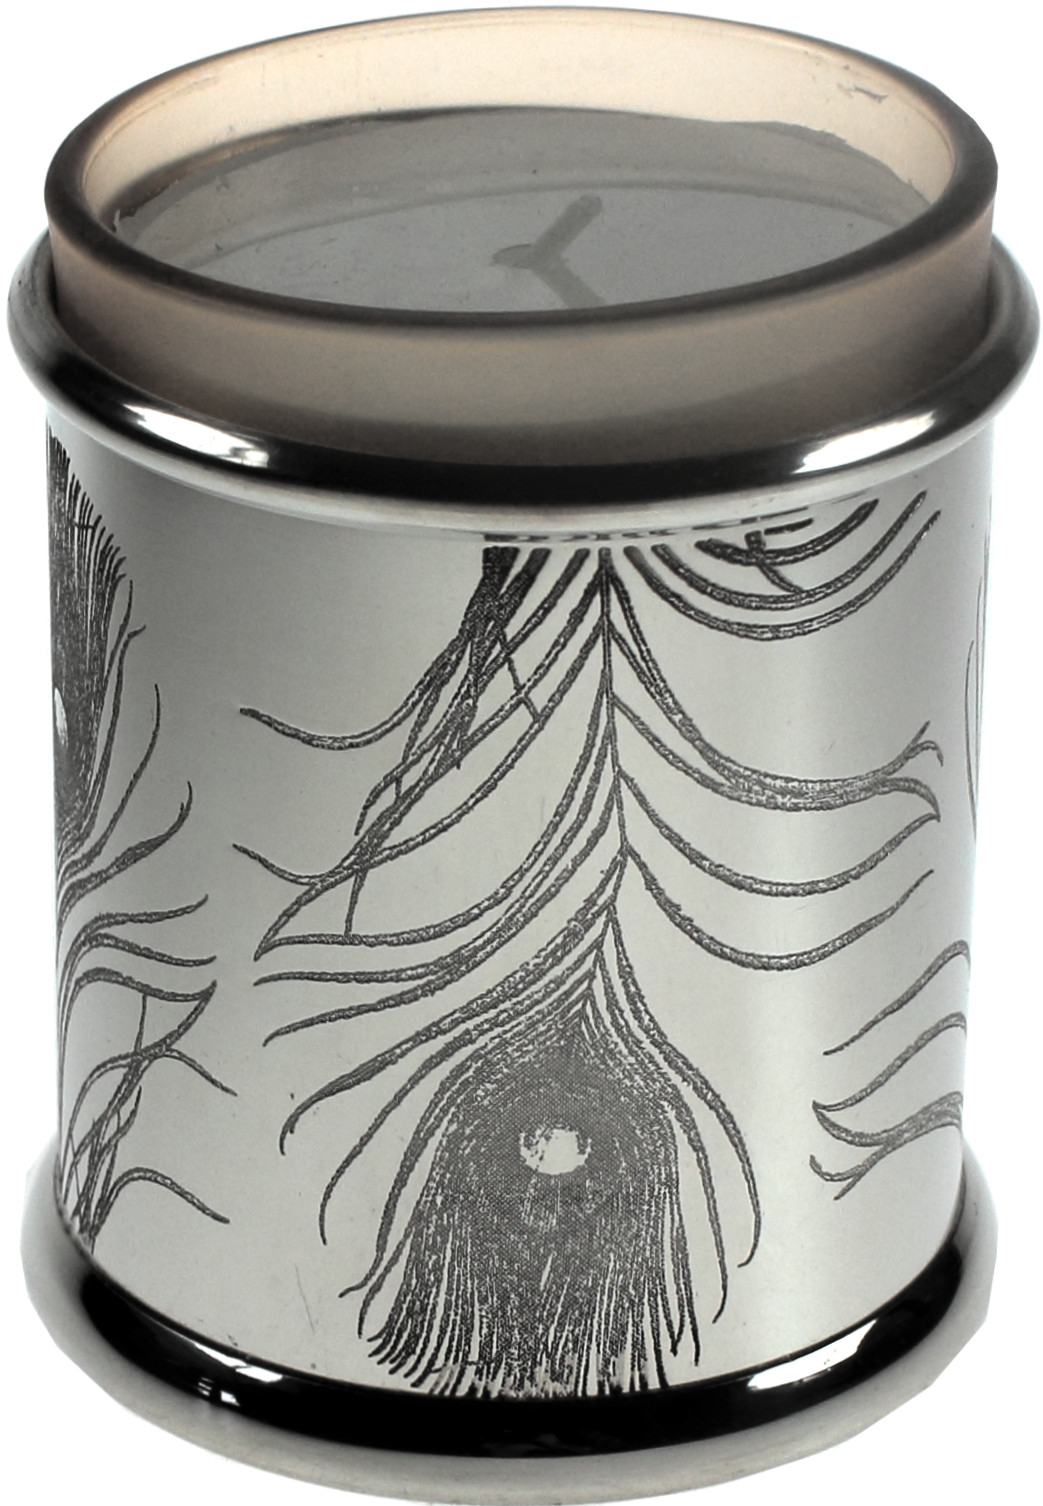 "Pewter Peacock Inspired Candle Votive and Candle 9cm (3.5"")"